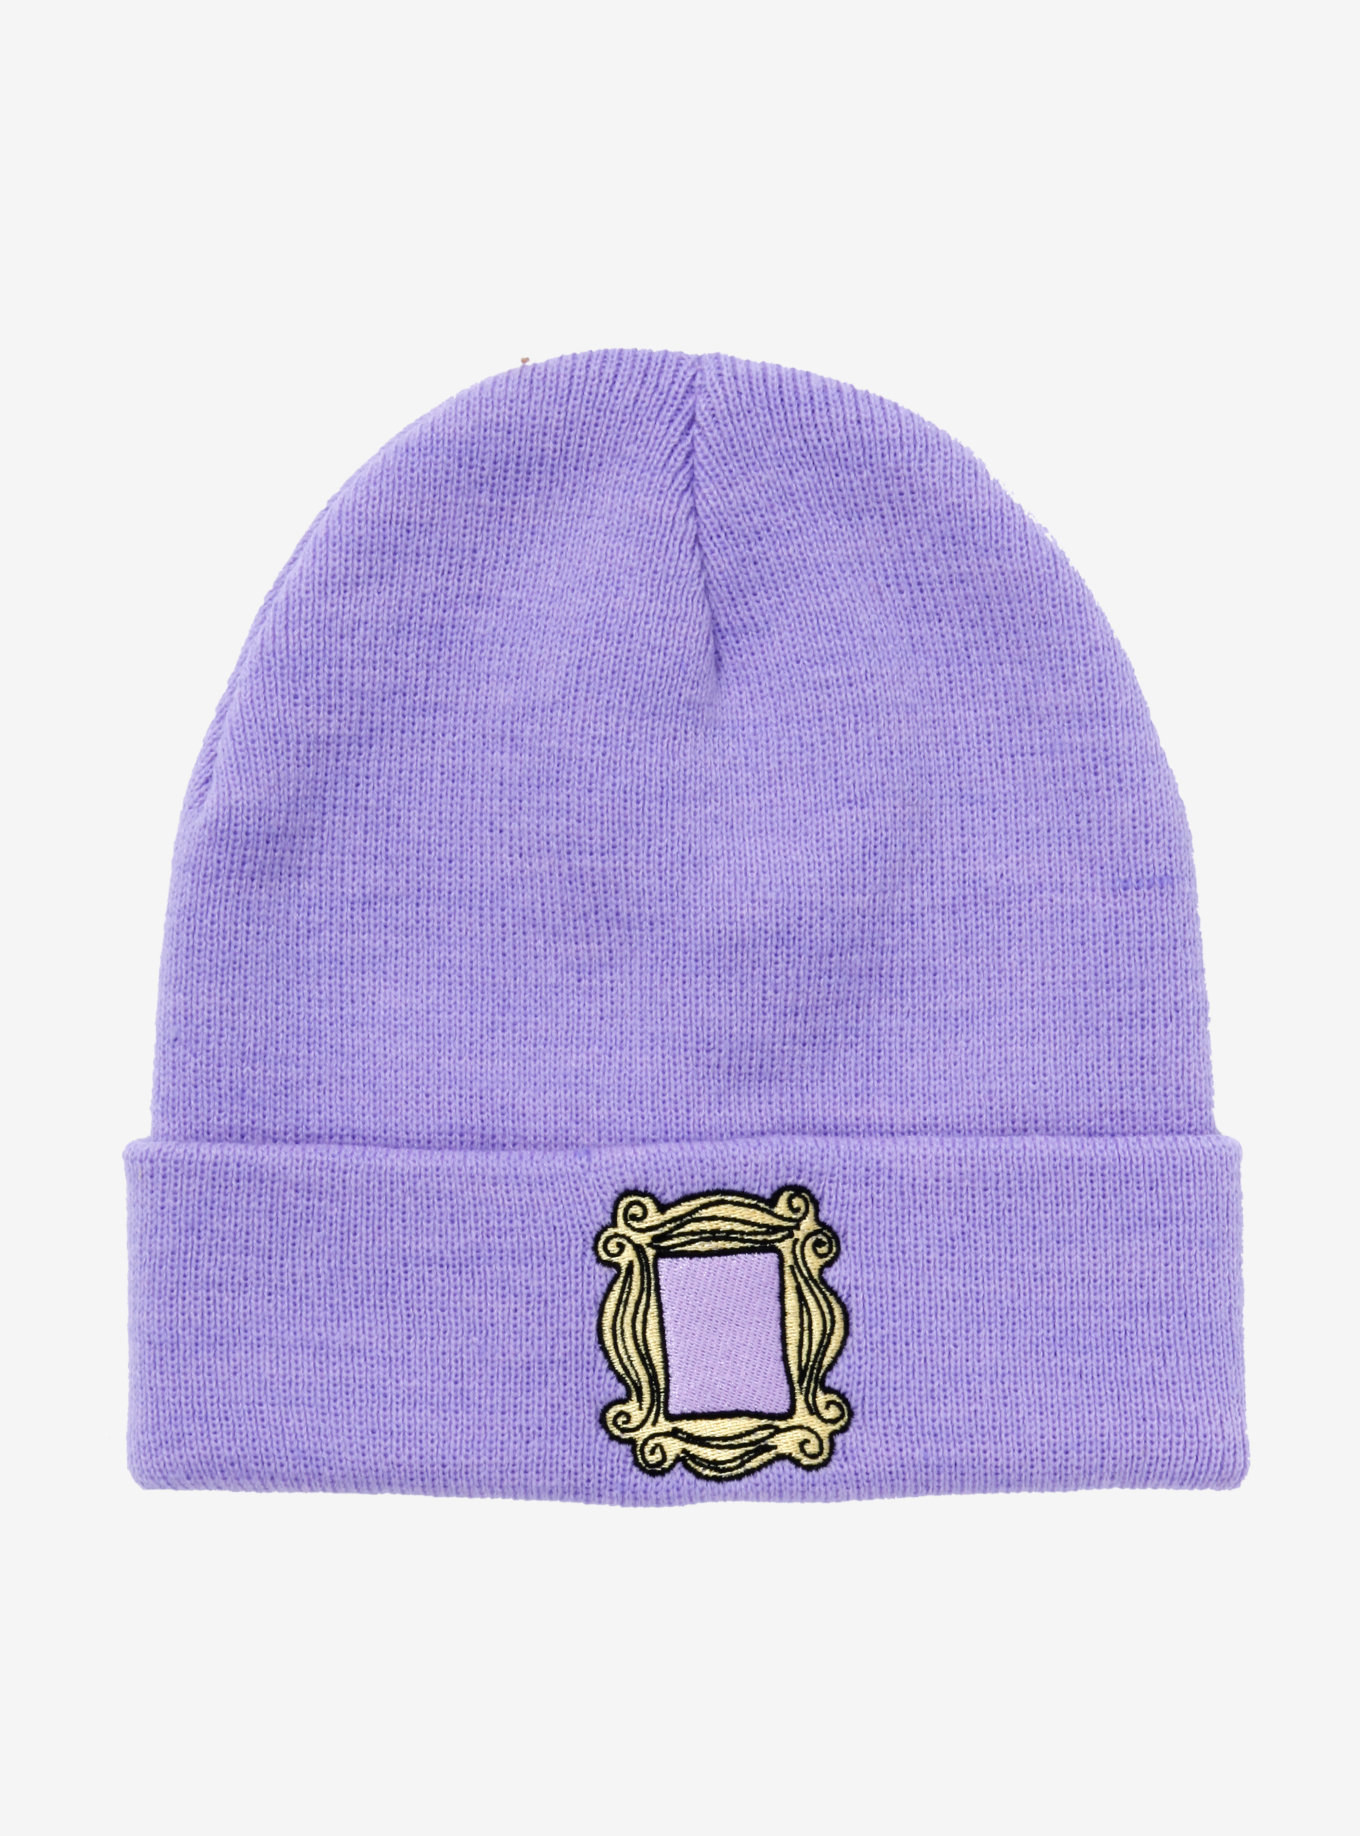 a purple cuffed beanie with the friends frame sewn onto it